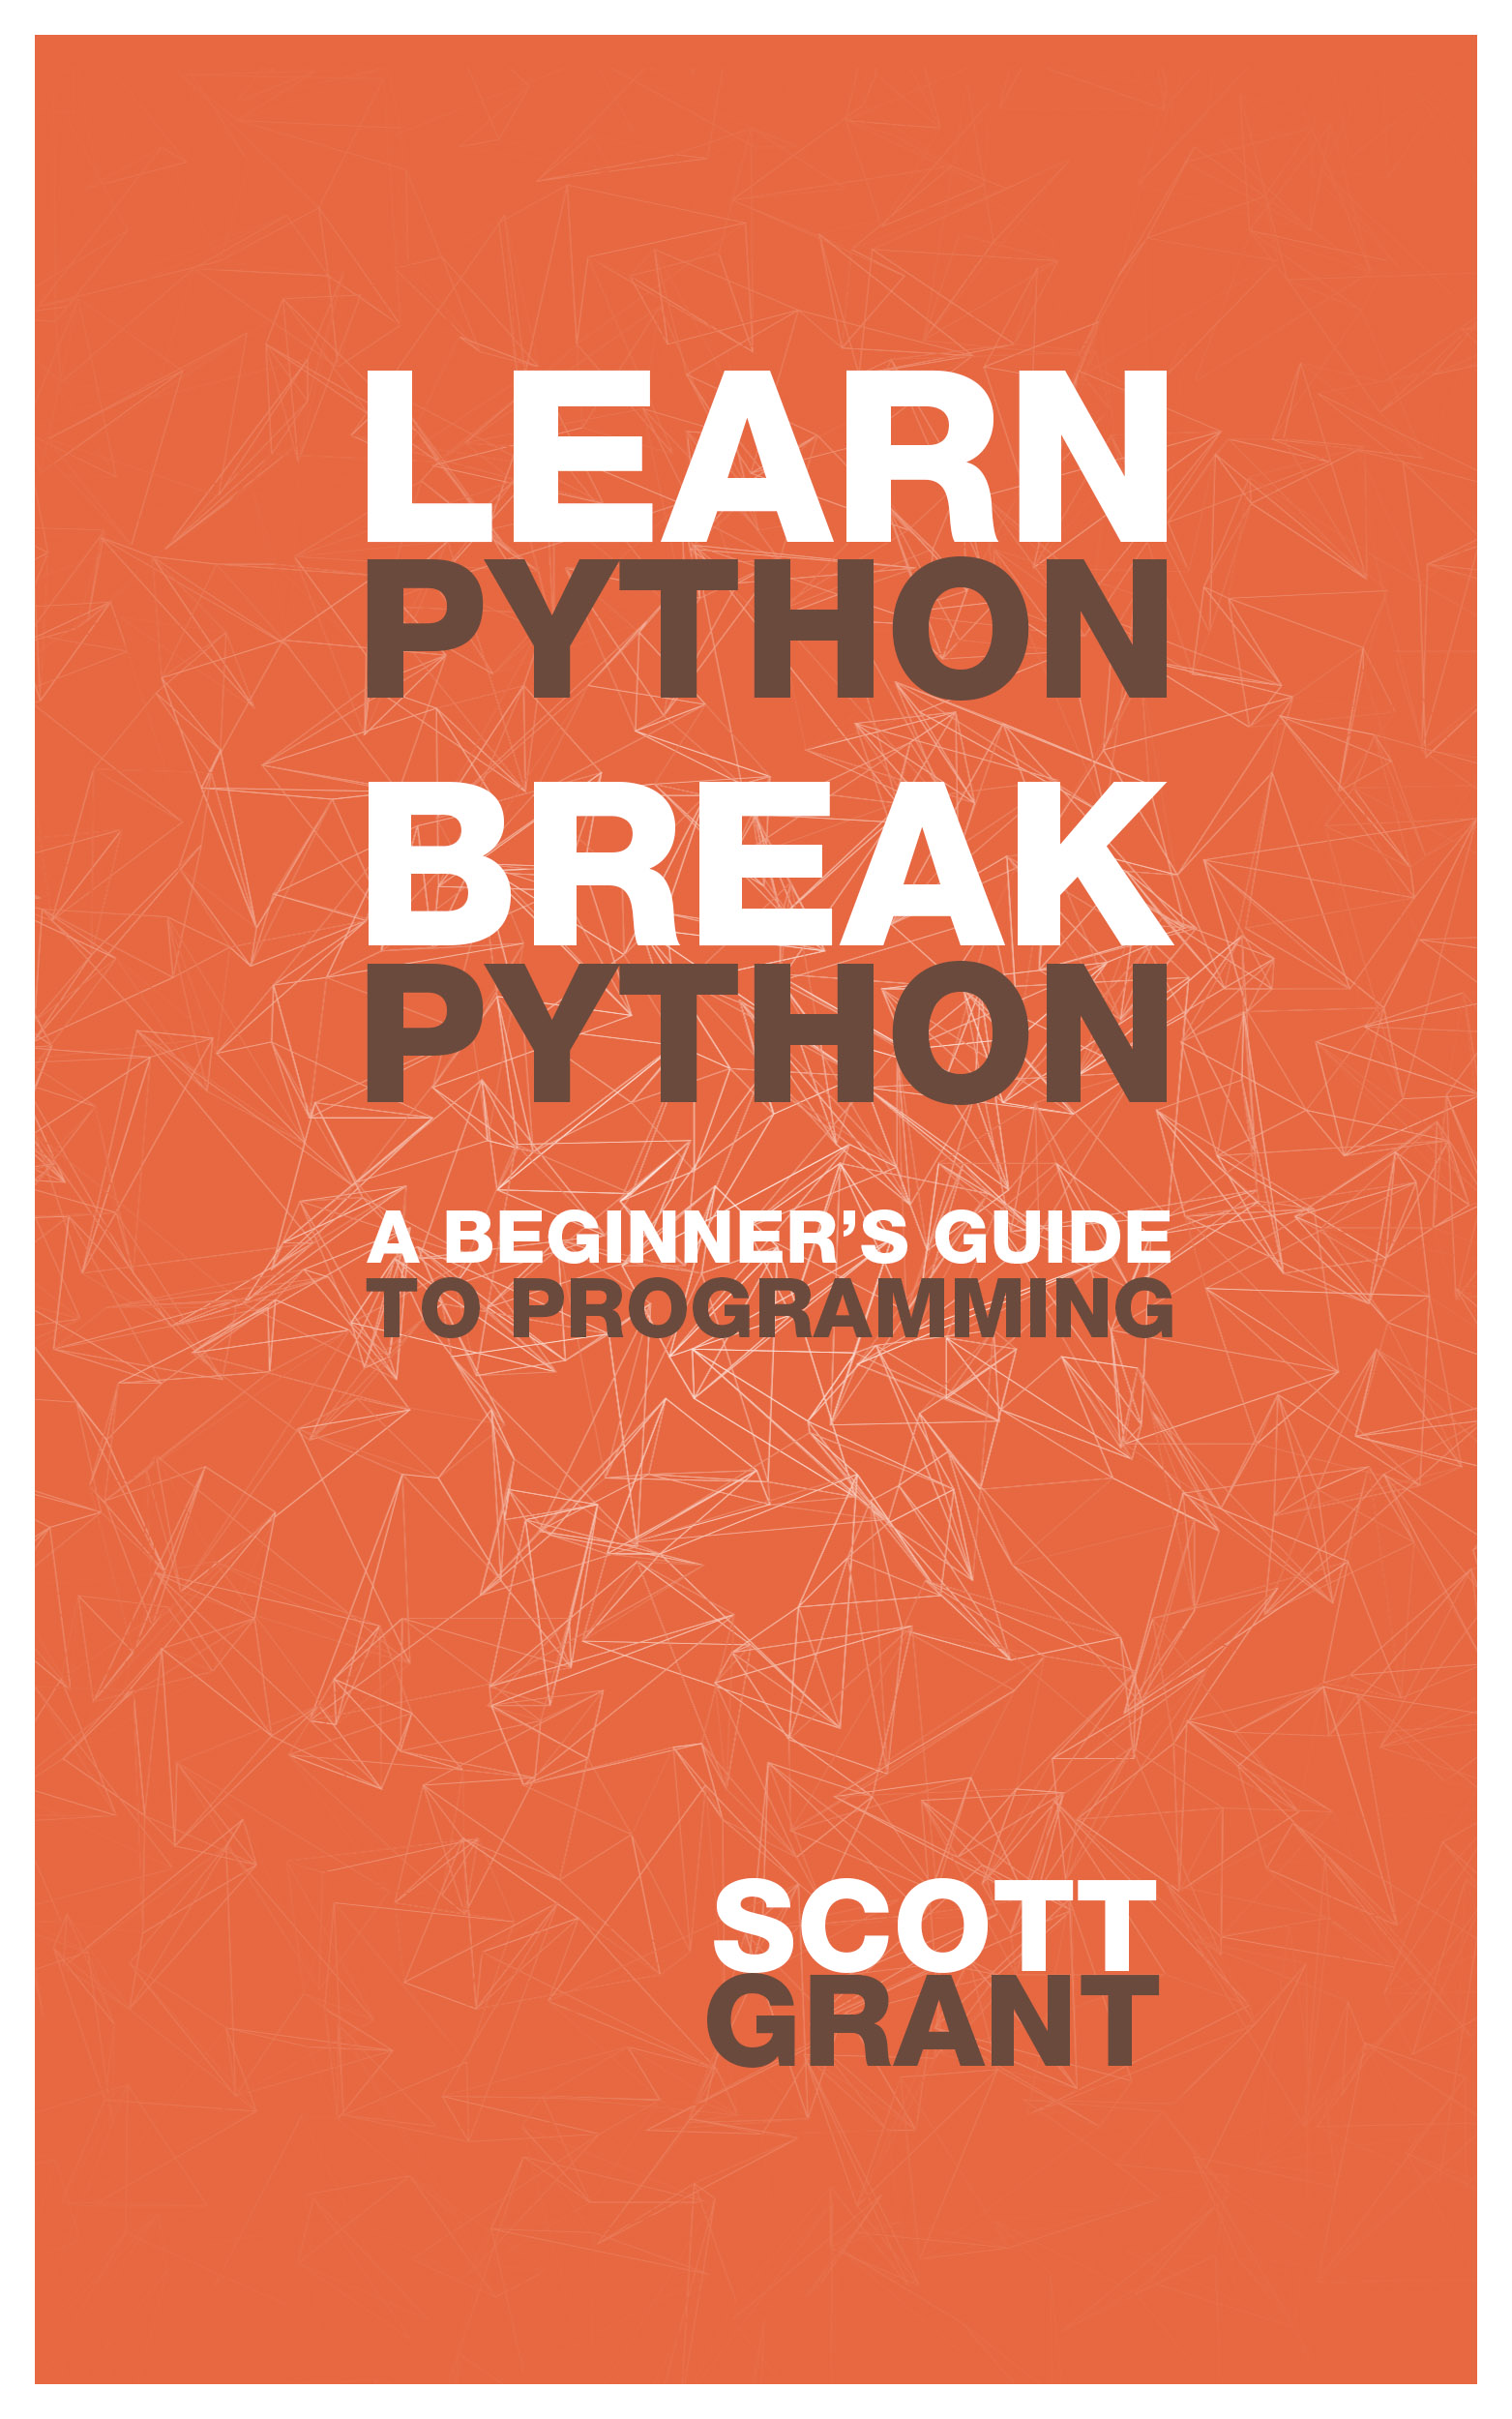 Learn Python, Break Python: A Beginner's Guide to Programming